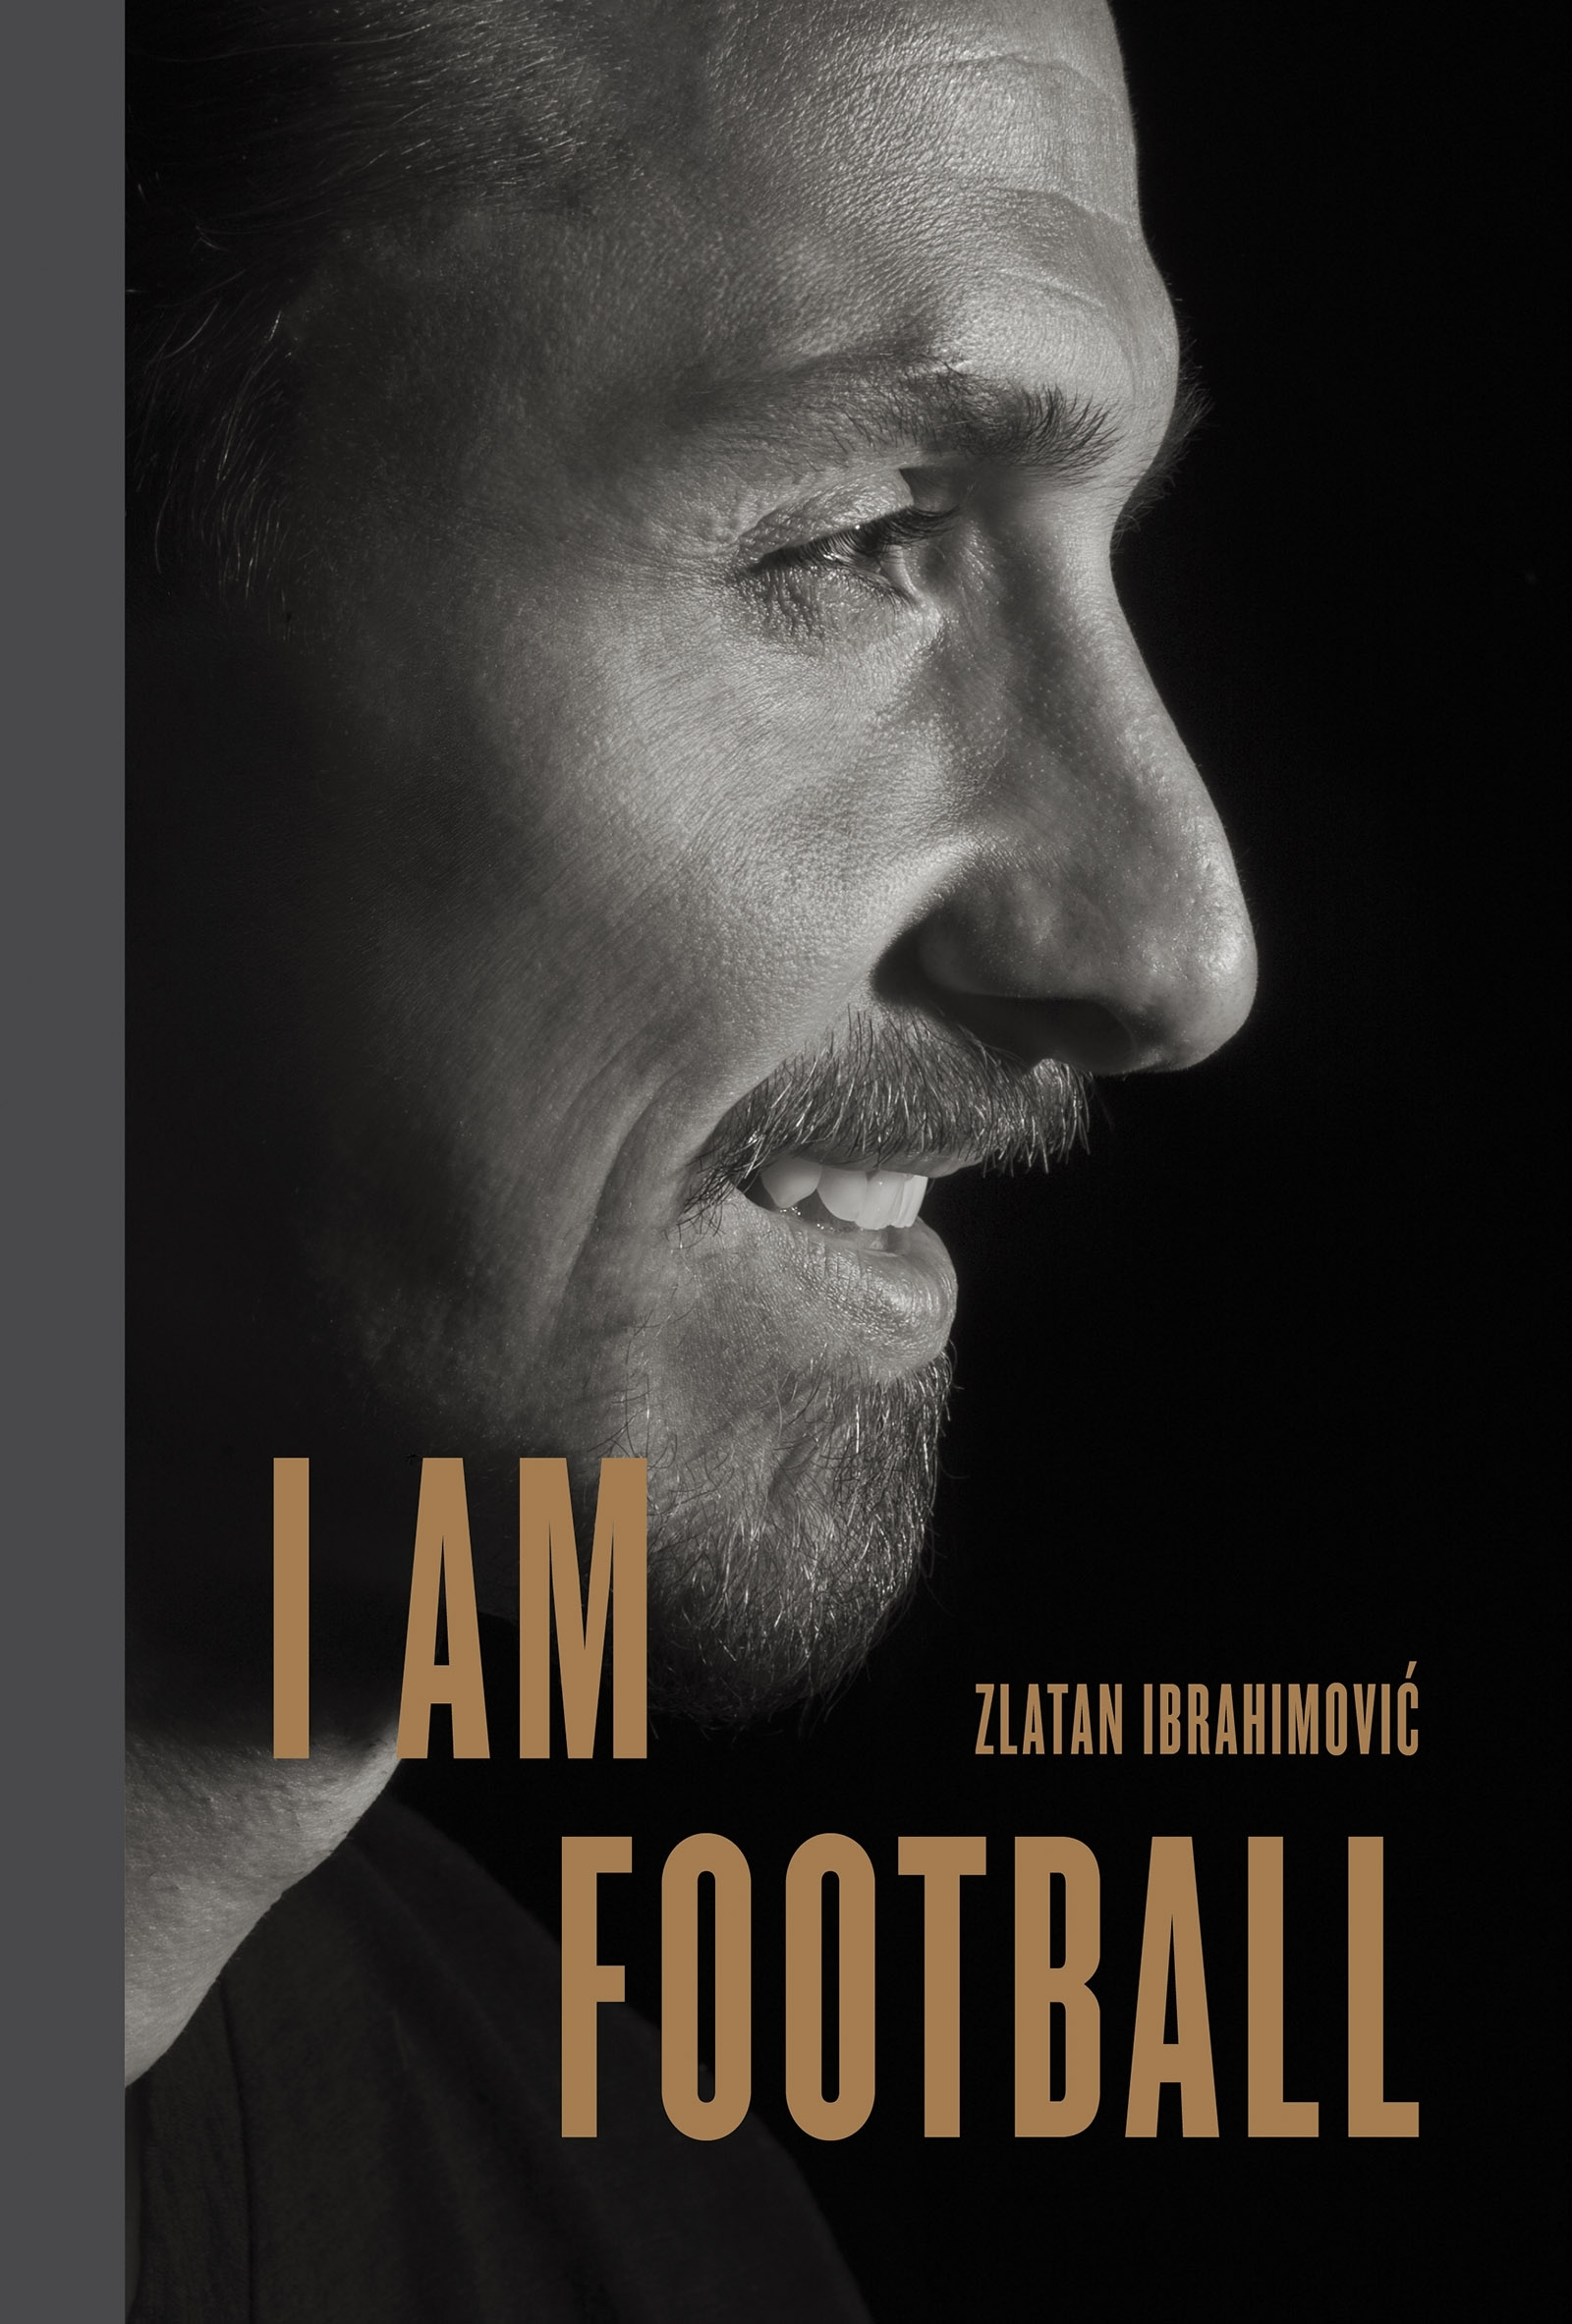 Am I Unproportional What Is Lagging In My Body: I Am Football: Zlatan Ibrahimovic By Zlatan Ibrahimovic